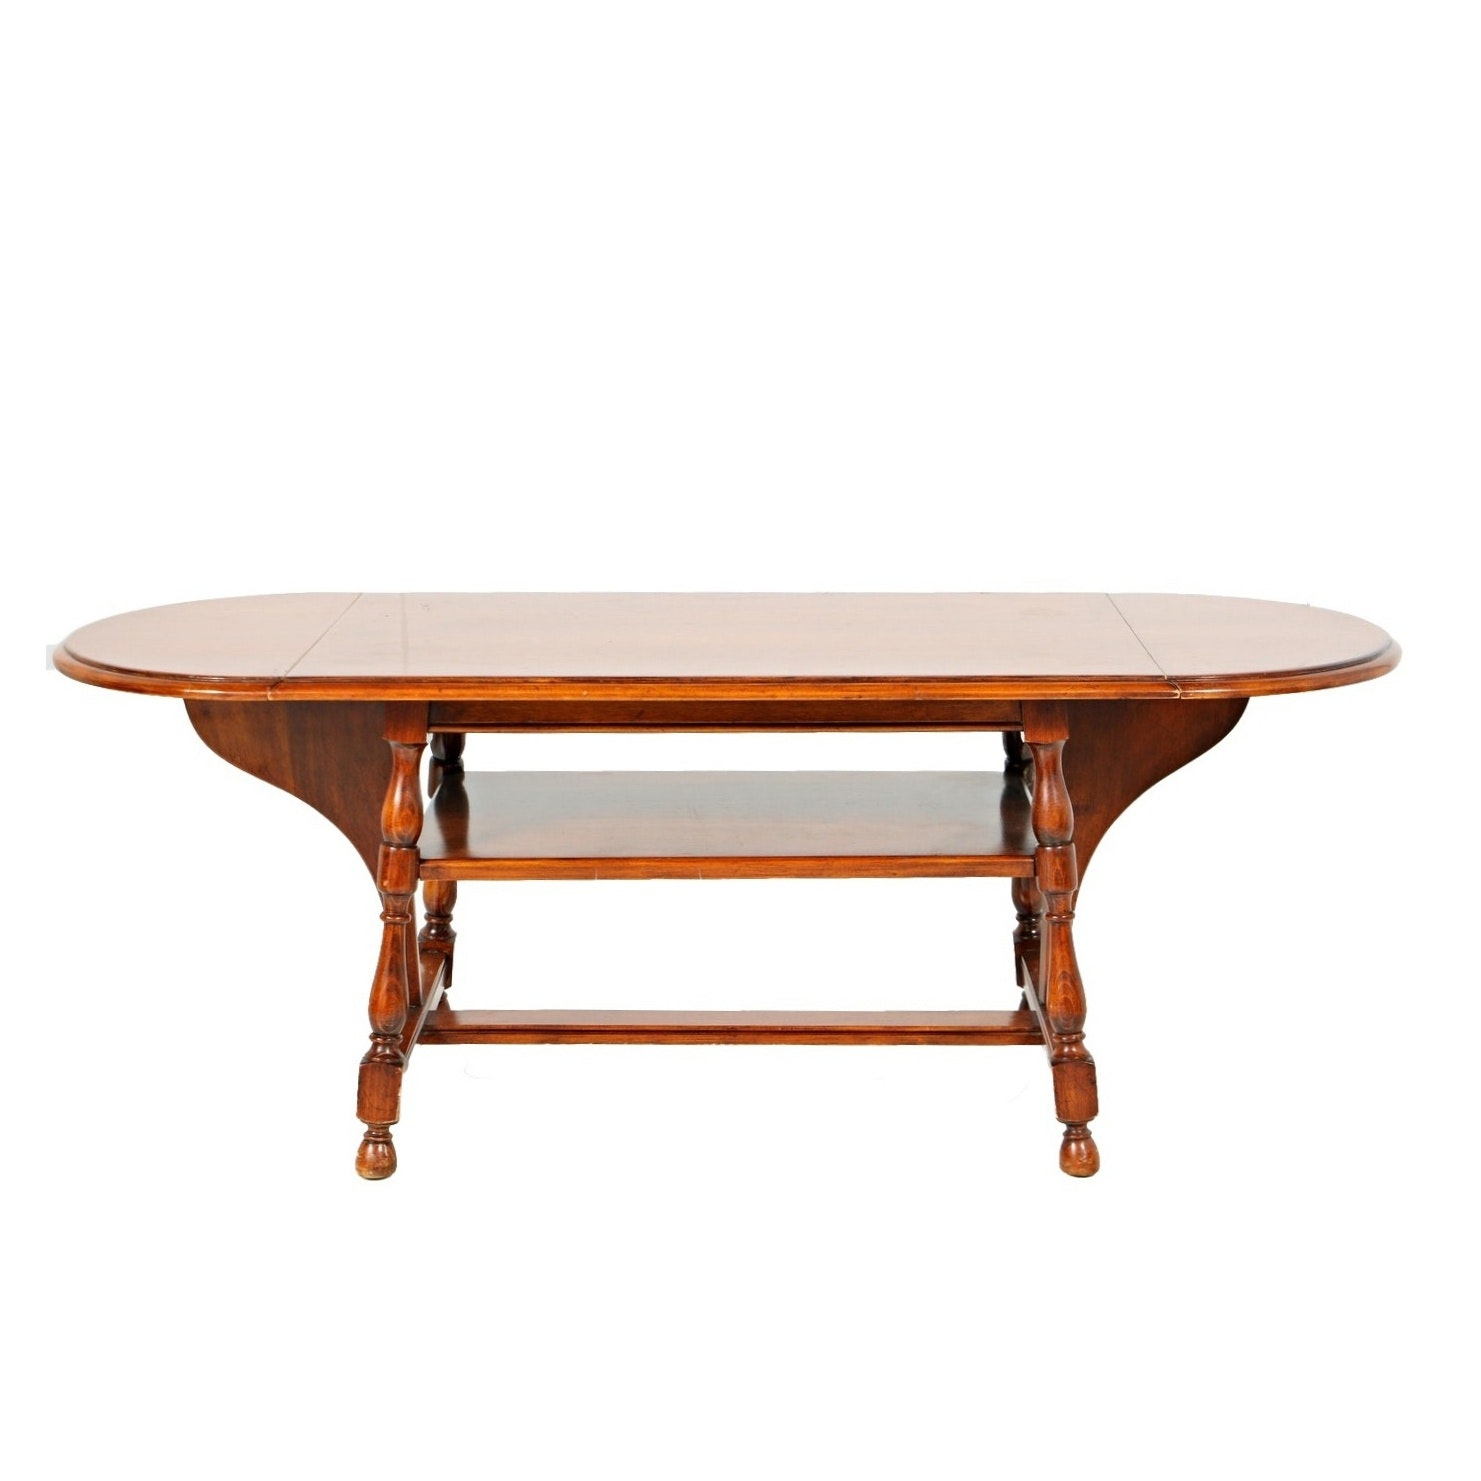 Vintage William and Mary Style Coffee Table with Drop Leaves